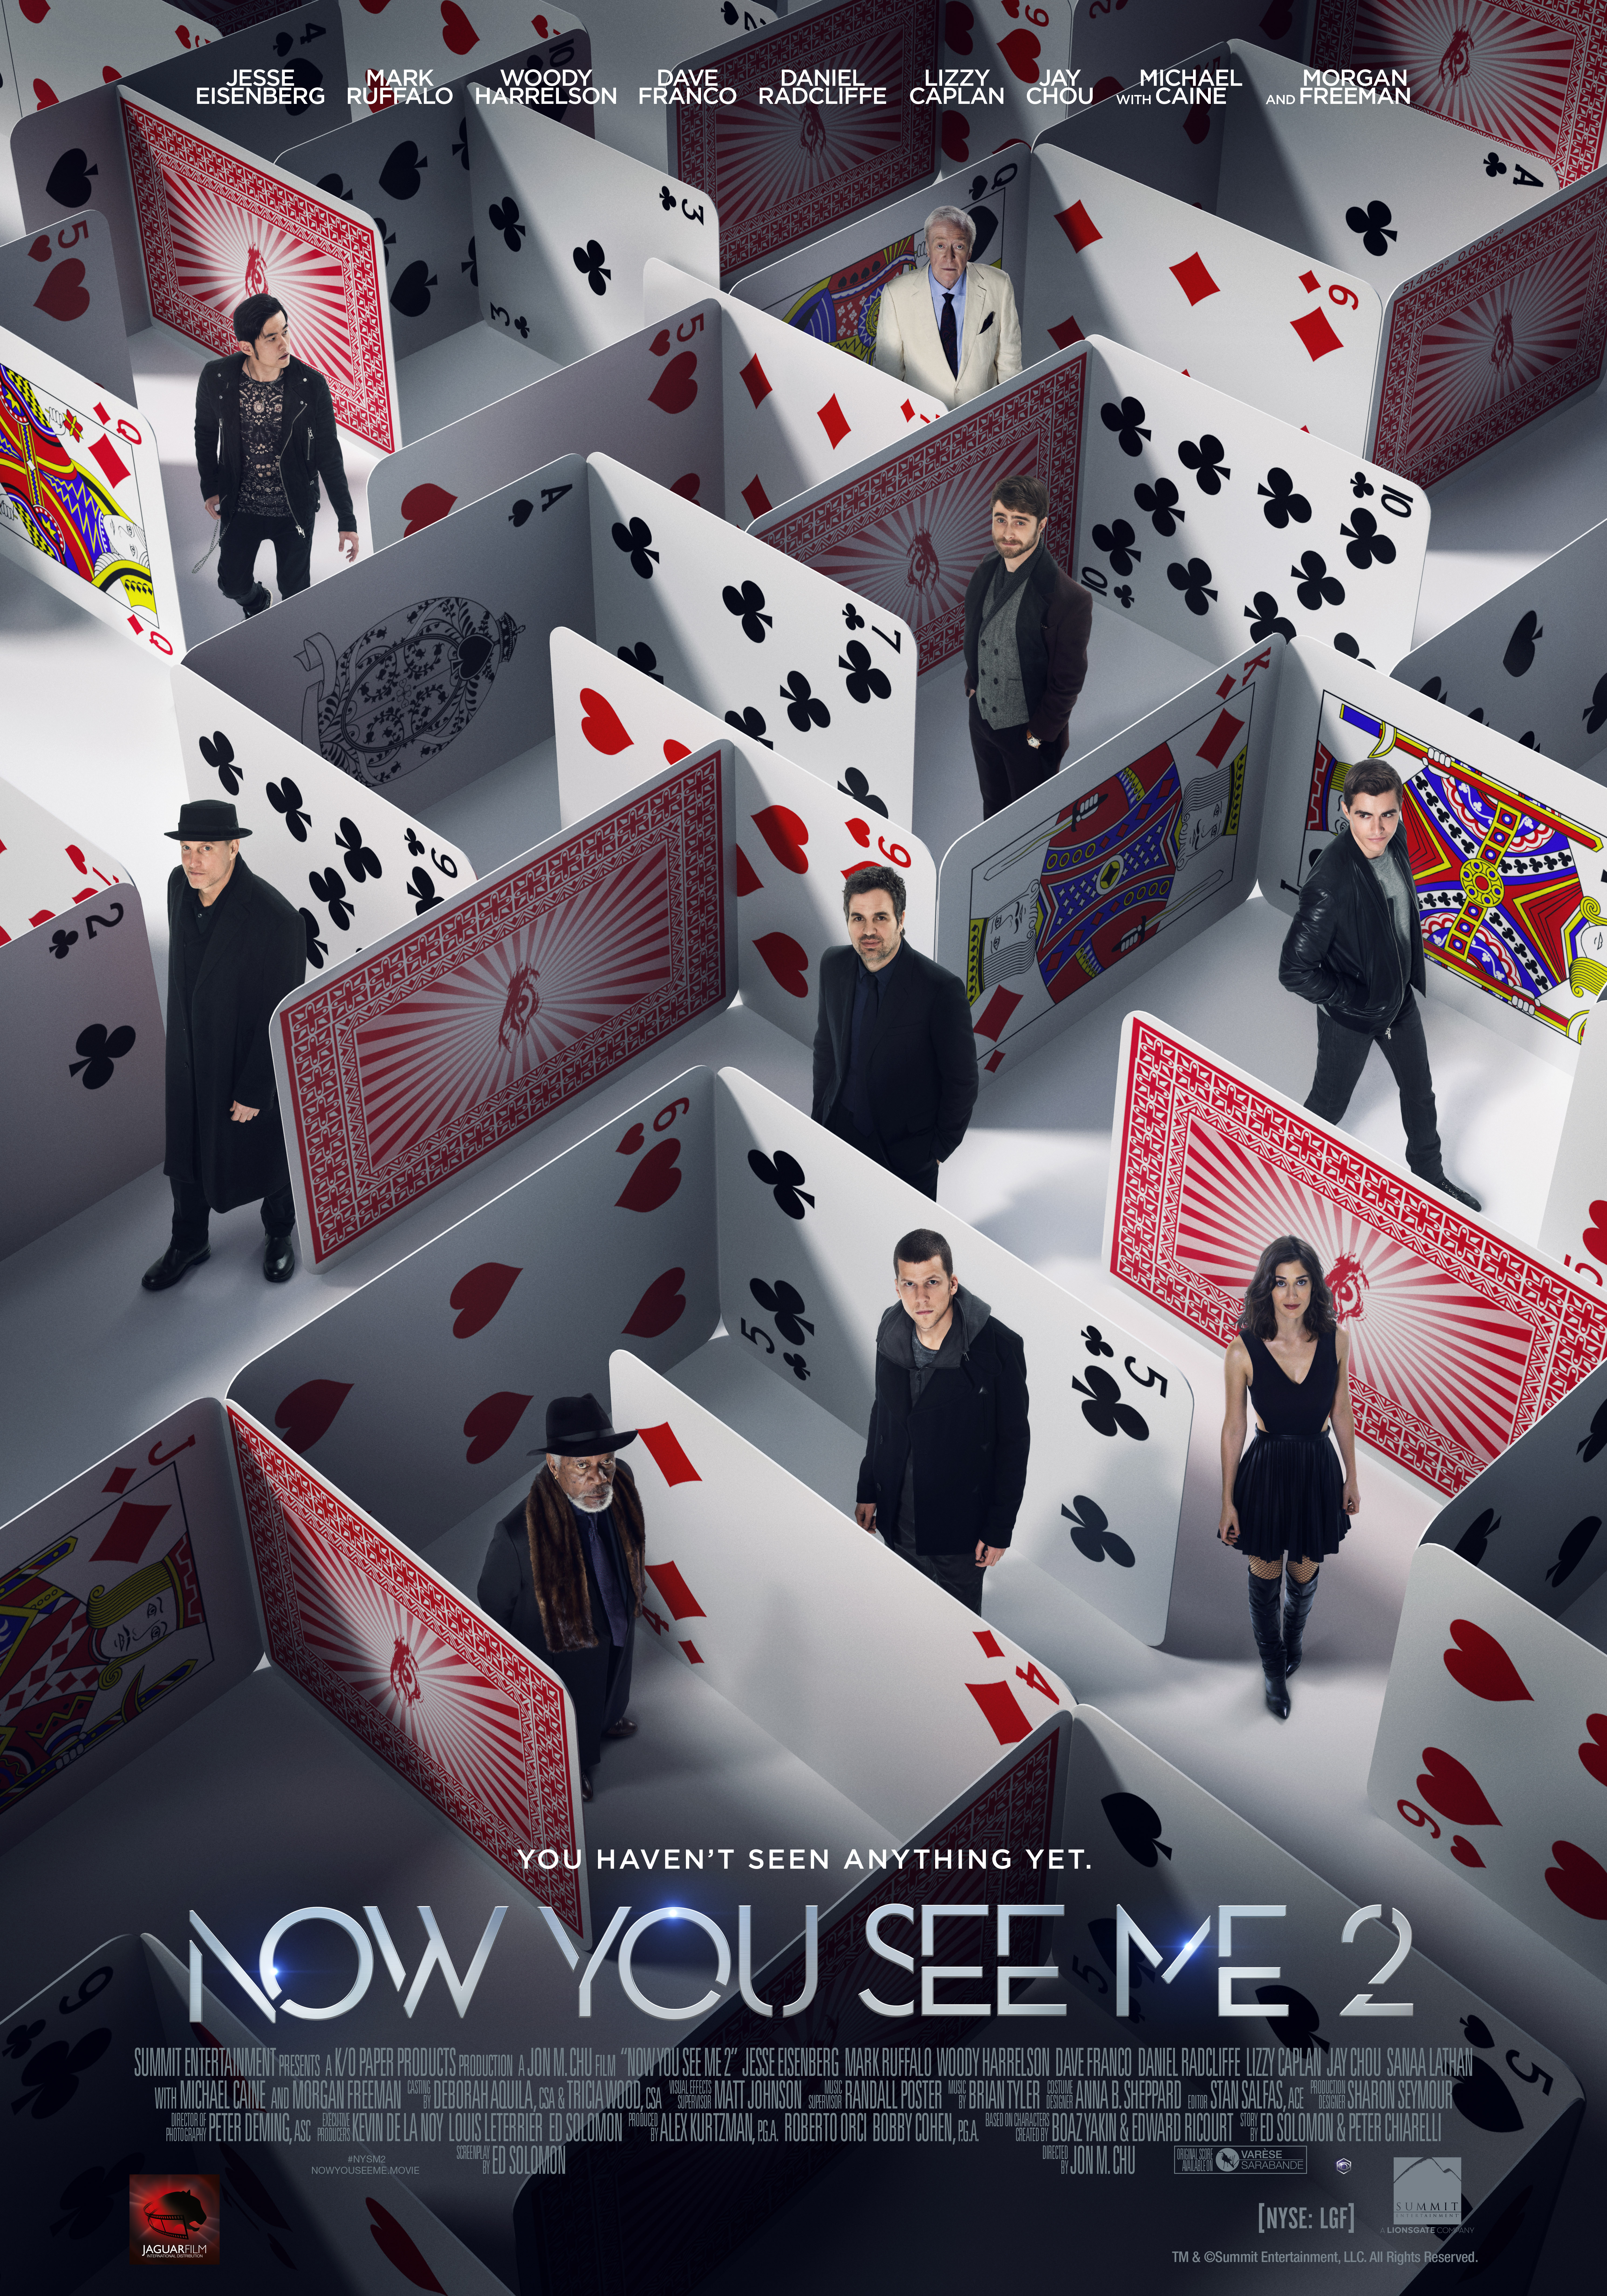 Now You See Me 2 [2016] ★★½